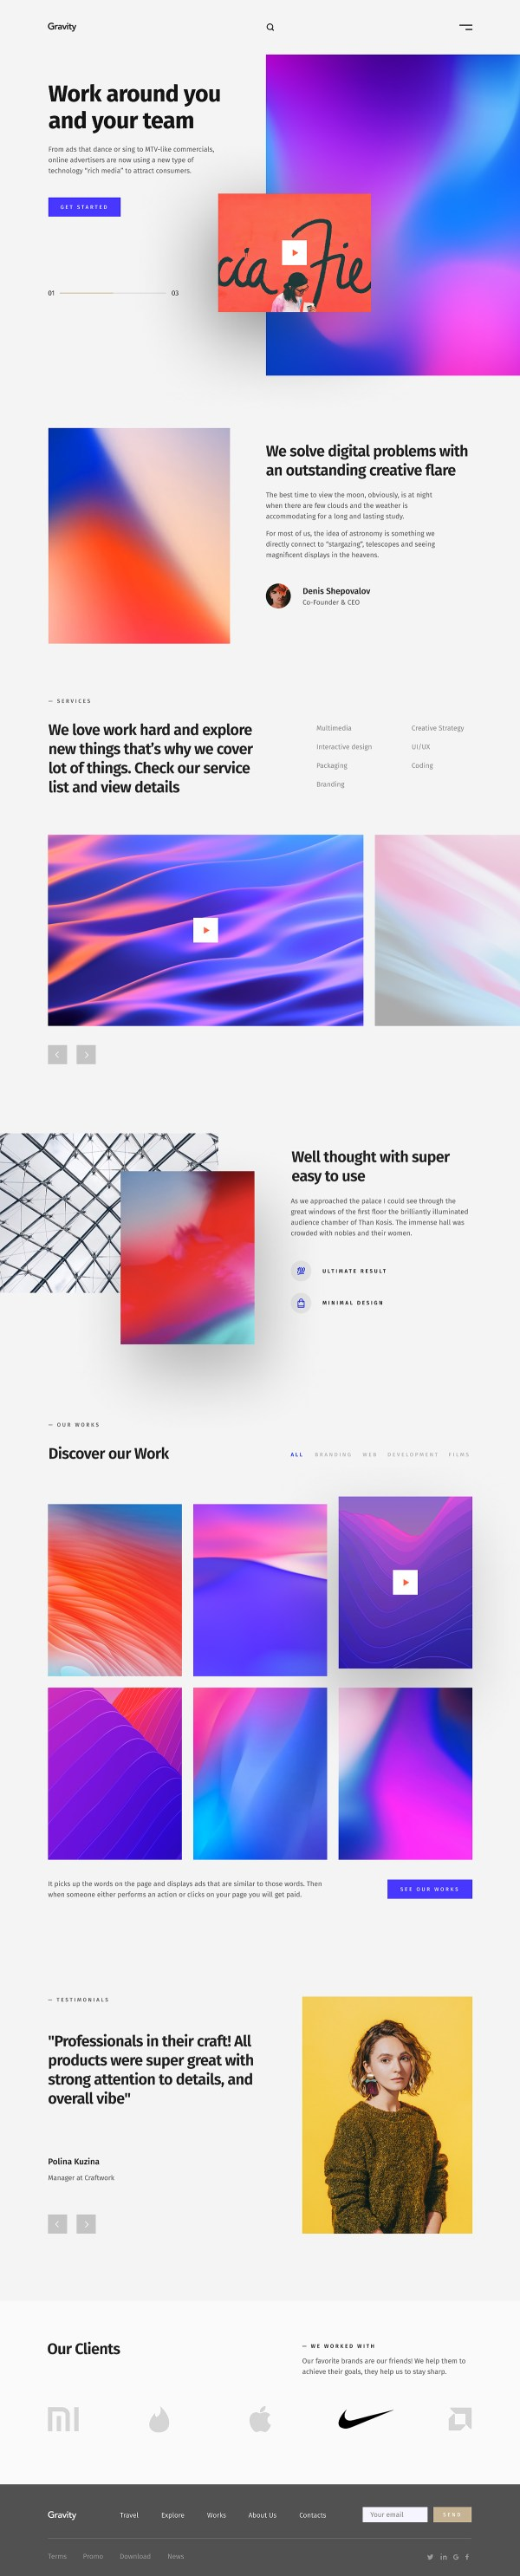 Gravity - Agency Portfolio Free Website Template - Home